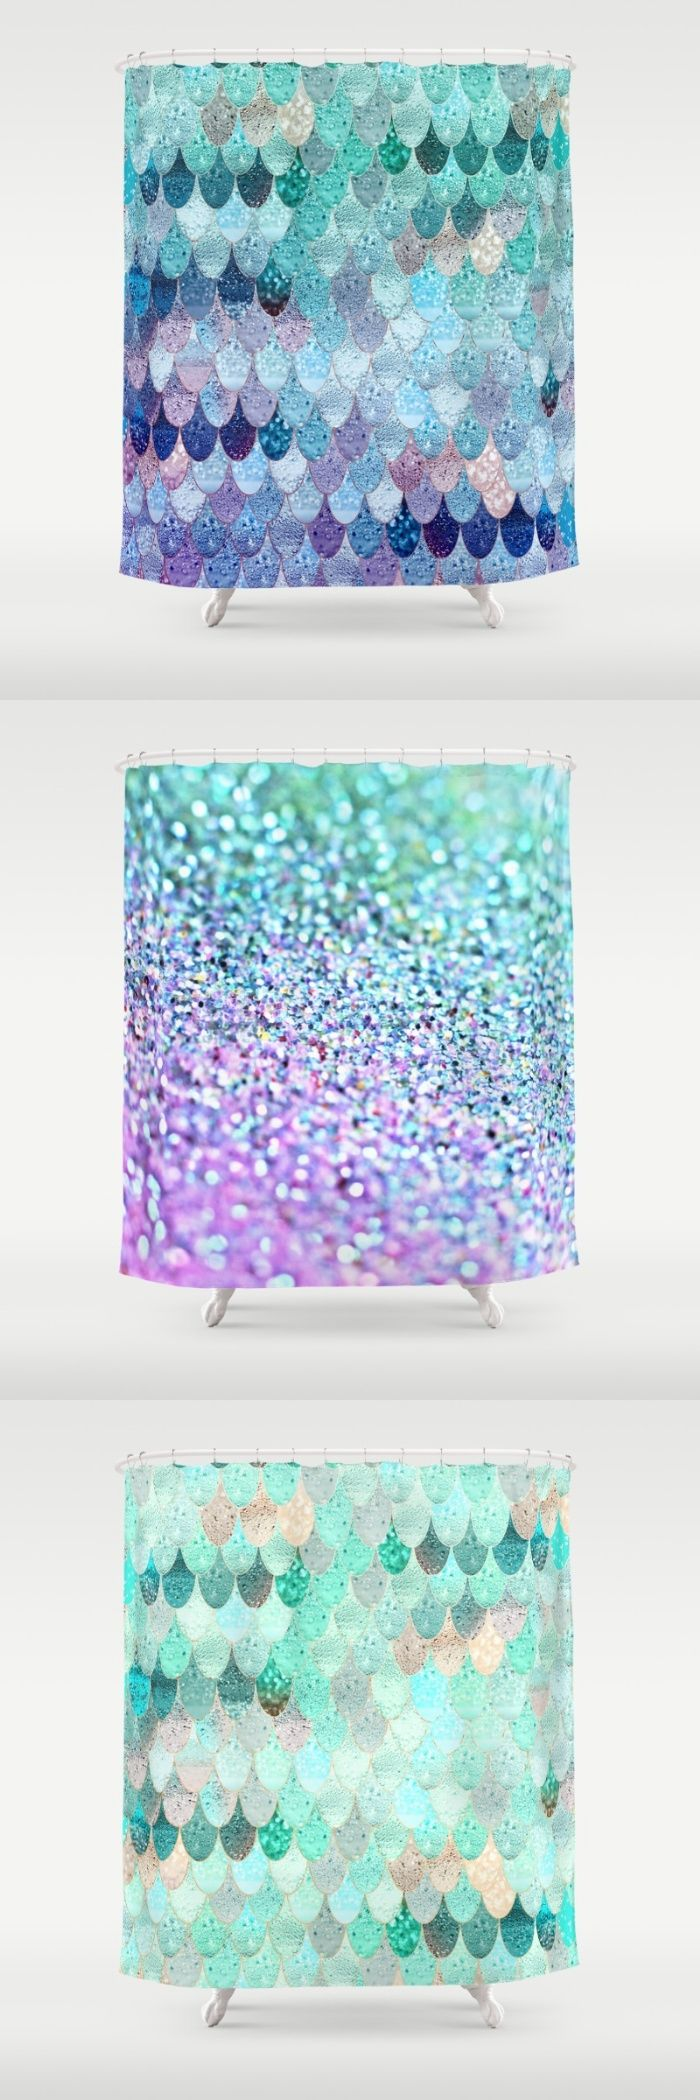 Mermaid Scale Shower Curtain Technically This Is A Shower Curtain But I Think The Mermaid